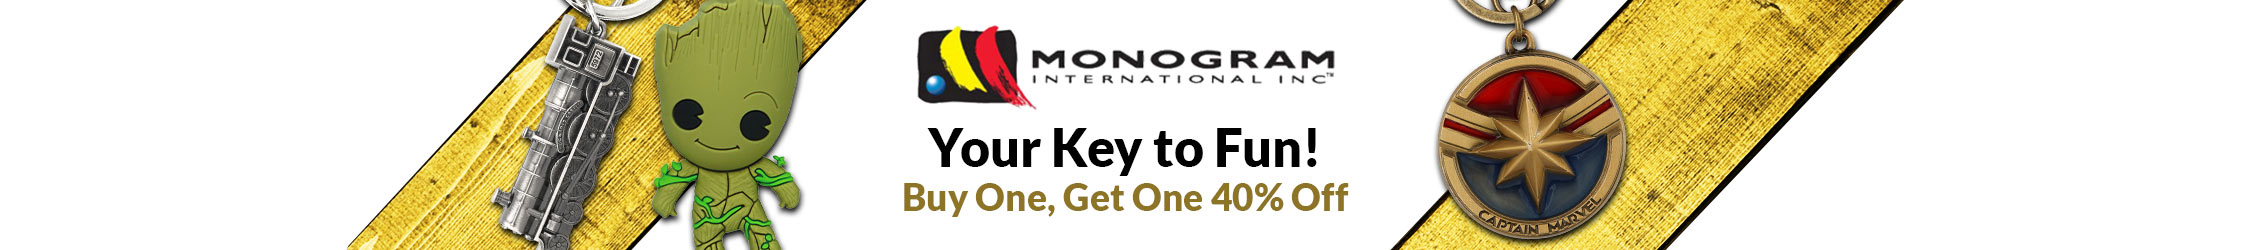 Your Key to Fun! Monogram Buy One Get One 40% Off Sale